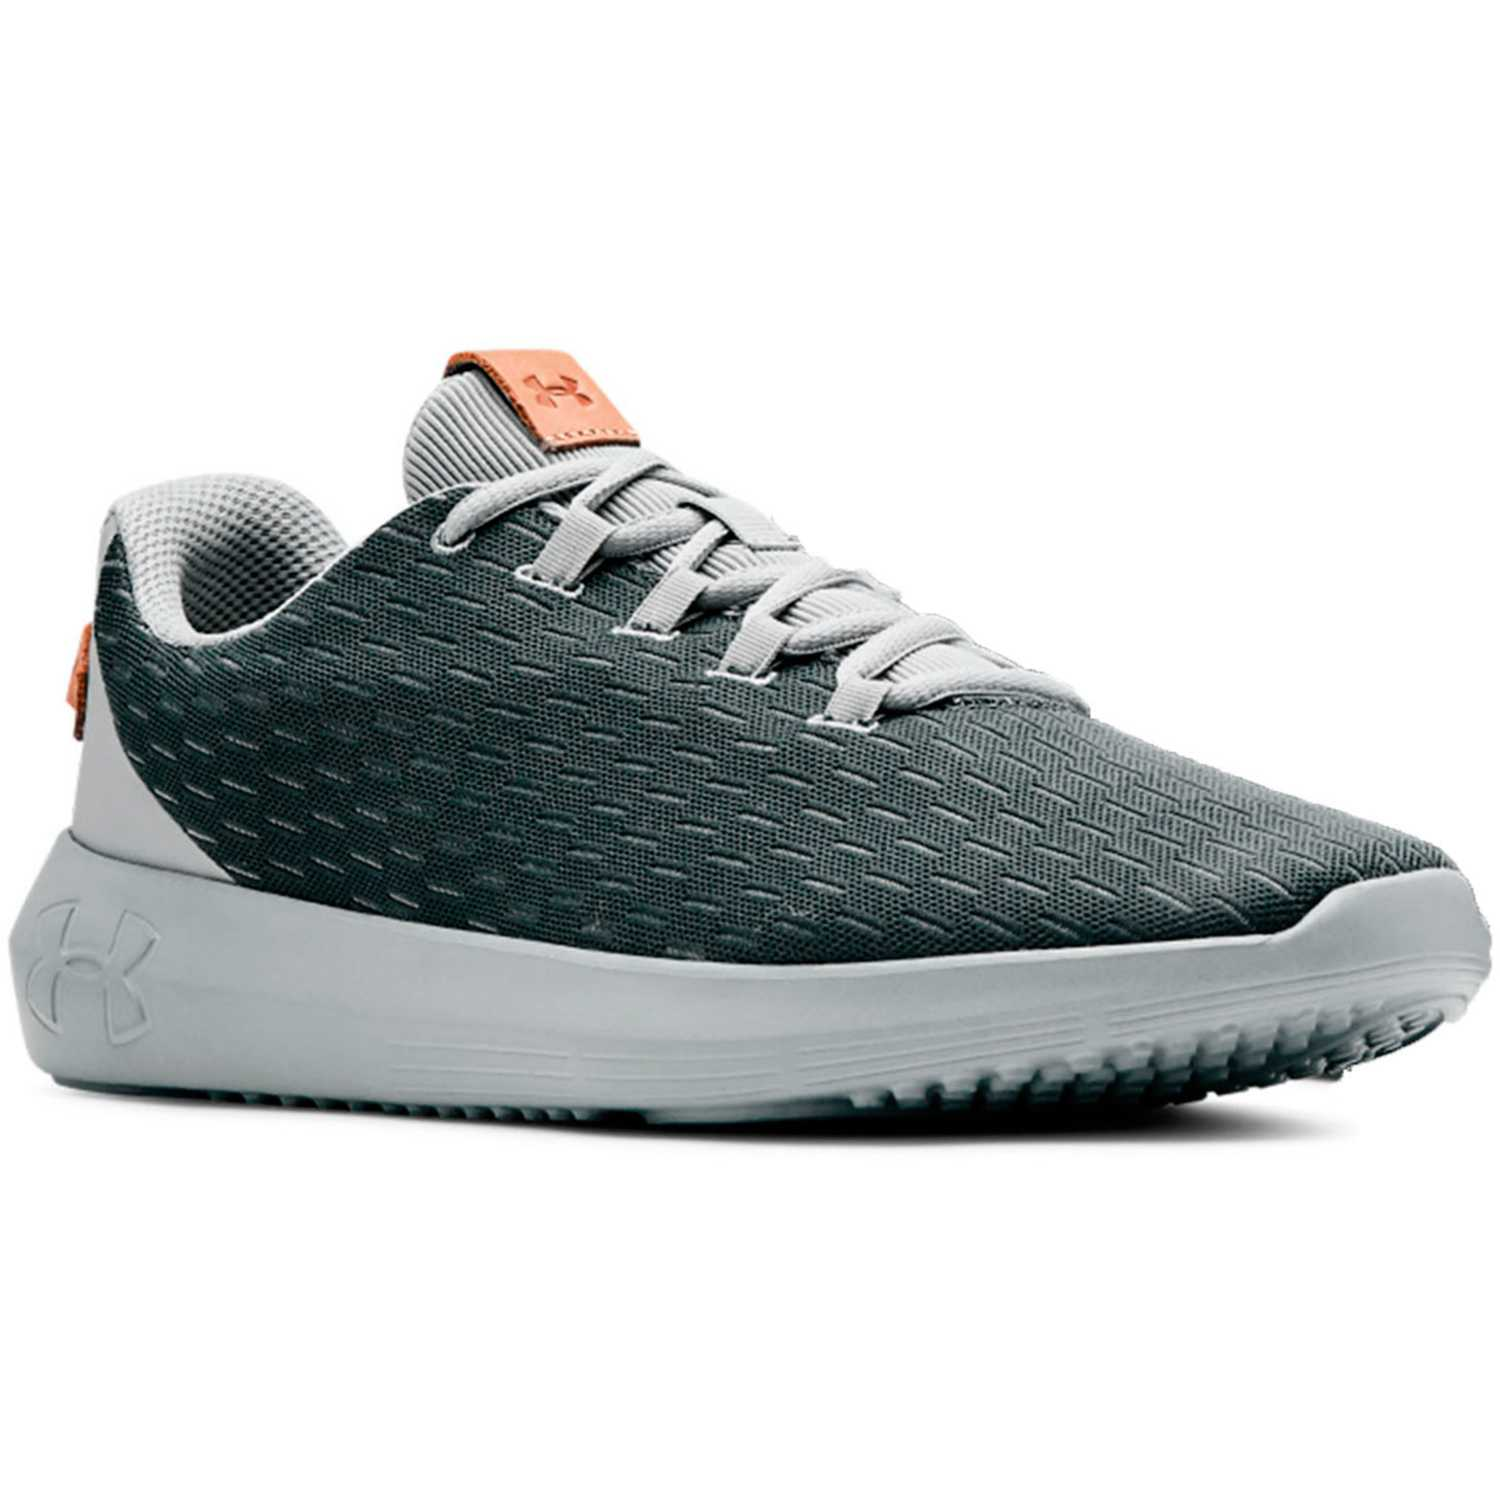 Zapatilla de Hombre Under Armour Acero ua ripple elevated